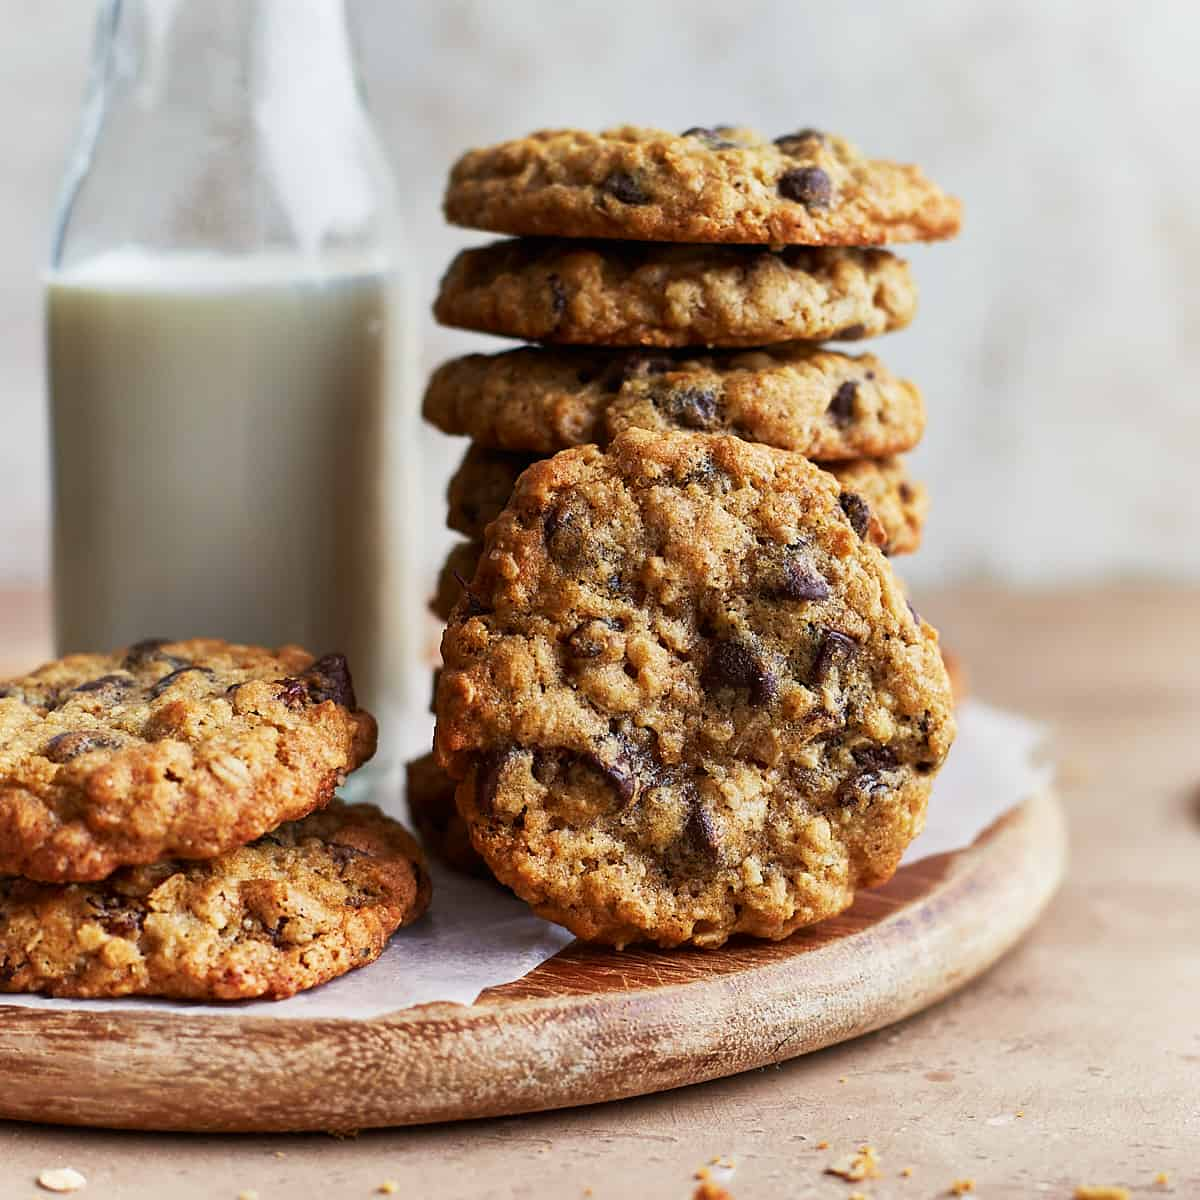 Stack of oatmeal cookies next to glass of milk